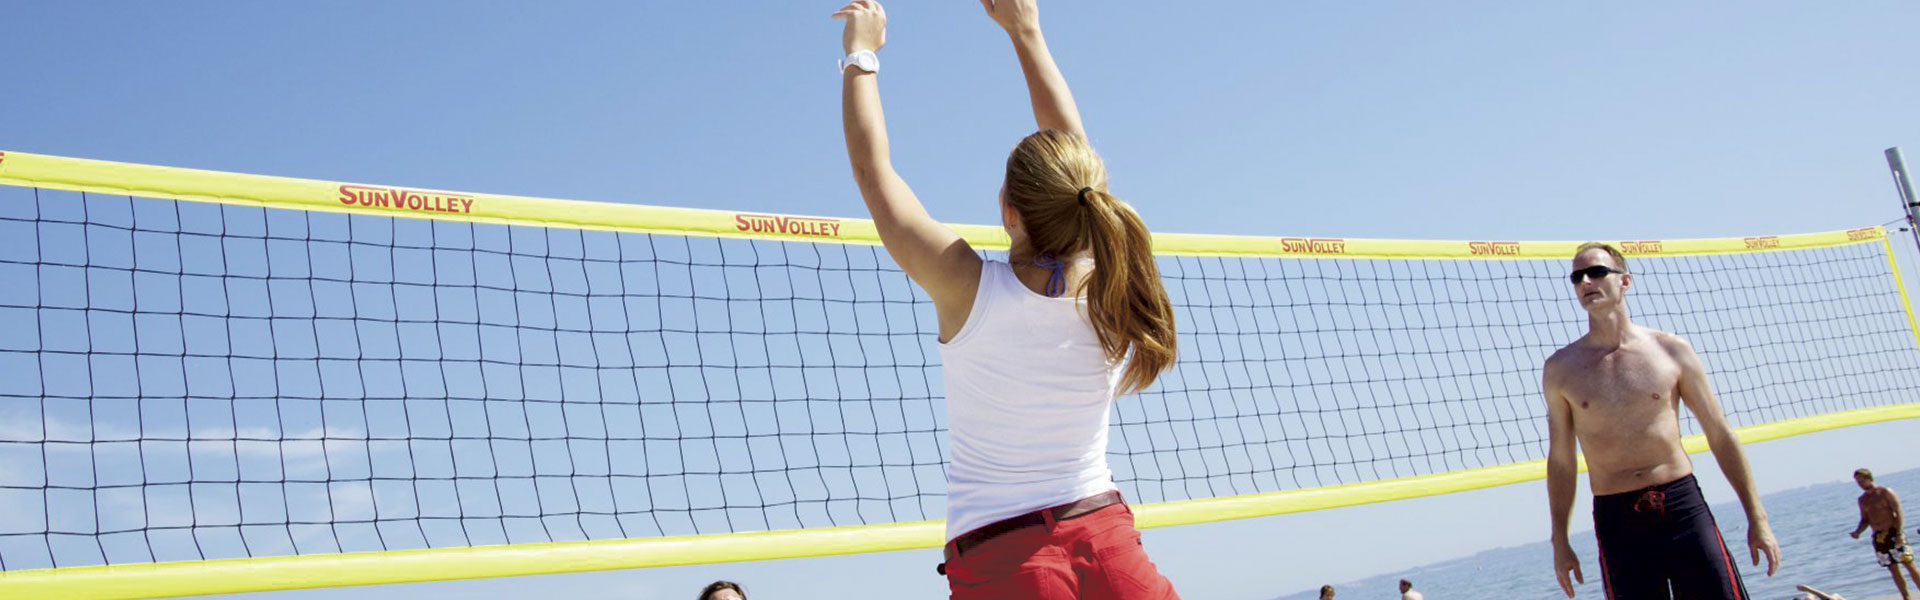 sunvolley slider